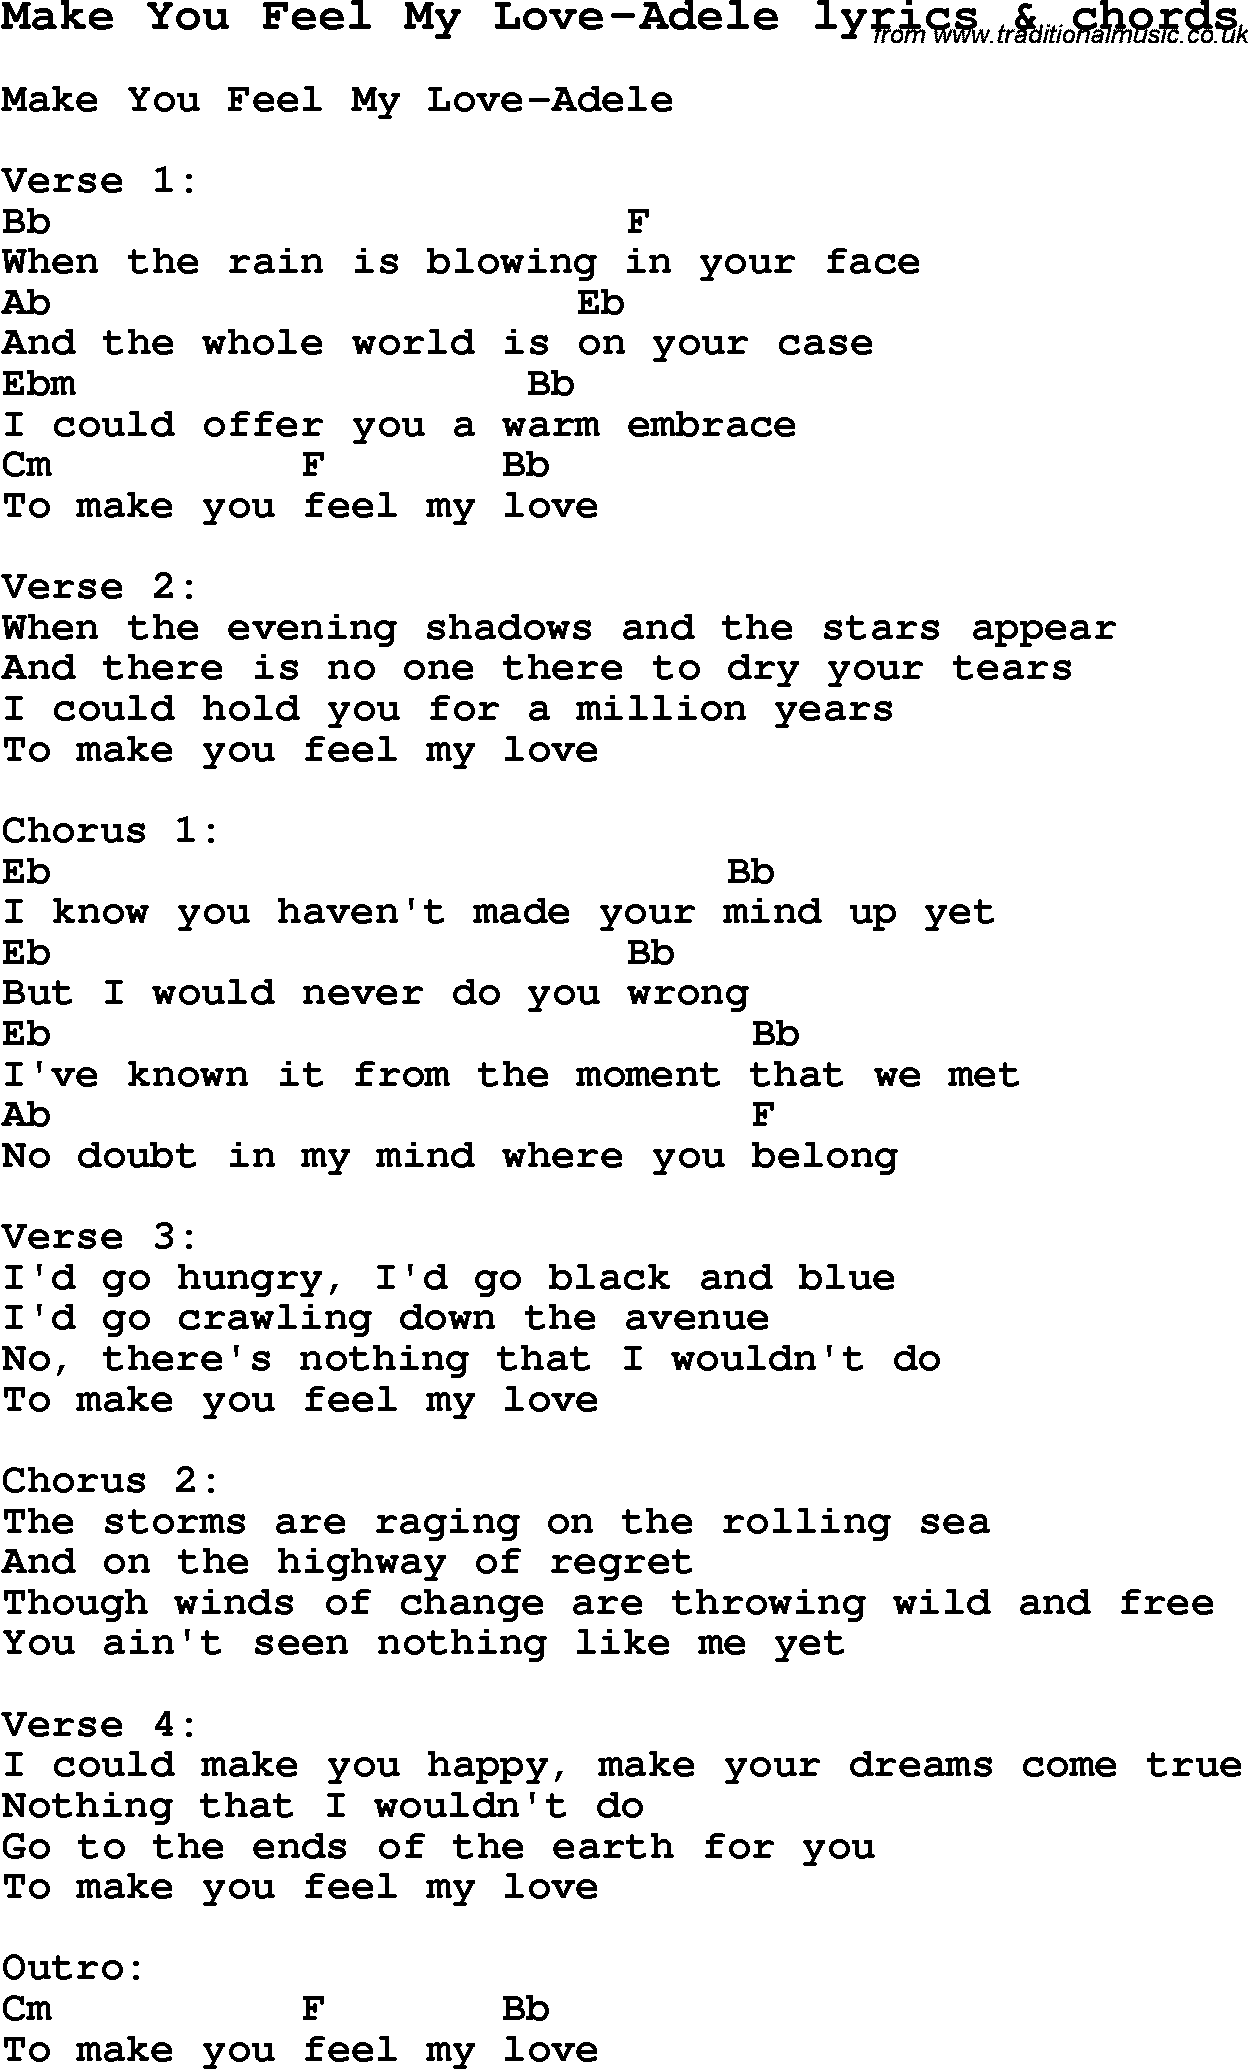 Love Song Lyrics Formake You Feel My Love Adele With Chords